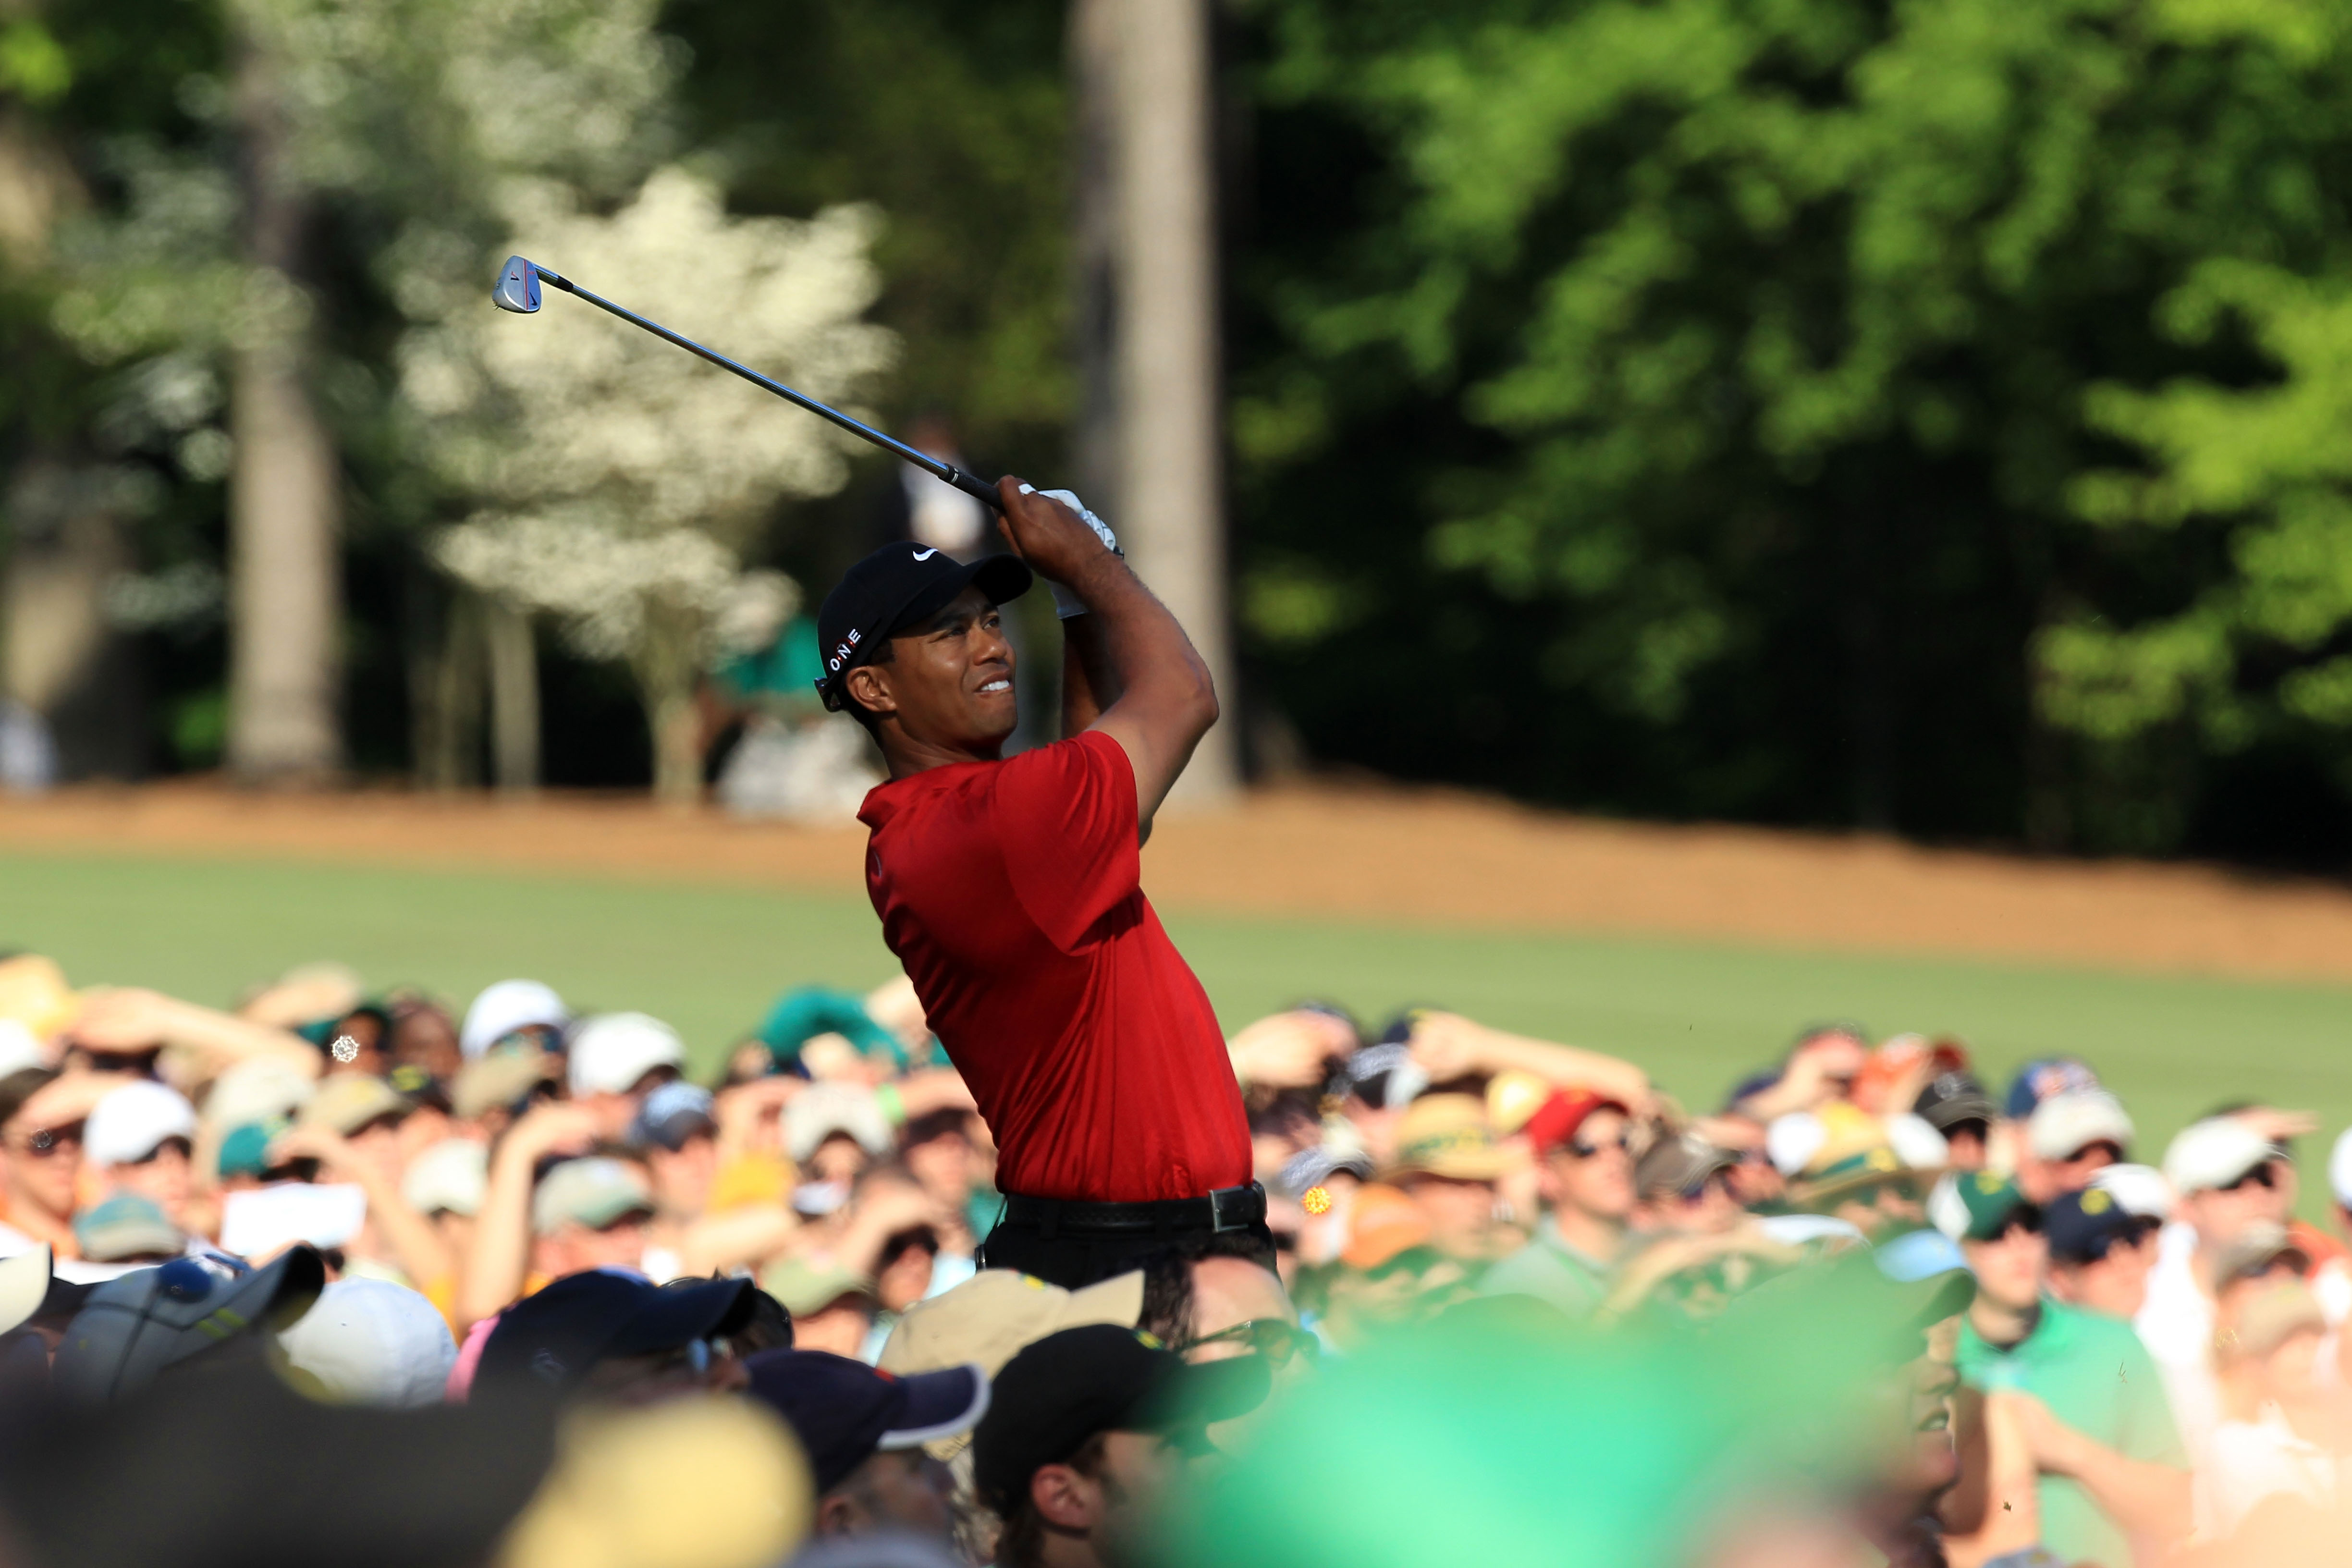 AUGUSTA, GA - APRIL 11:  Tiger Woods watches his tee shot on the 12th hole during the final round of the 2010 Masters Tournament at Augusta National Golf Club on April 11, 2010 in Augusta, Georgia.  (Photo by David Cannon/Getty Images)